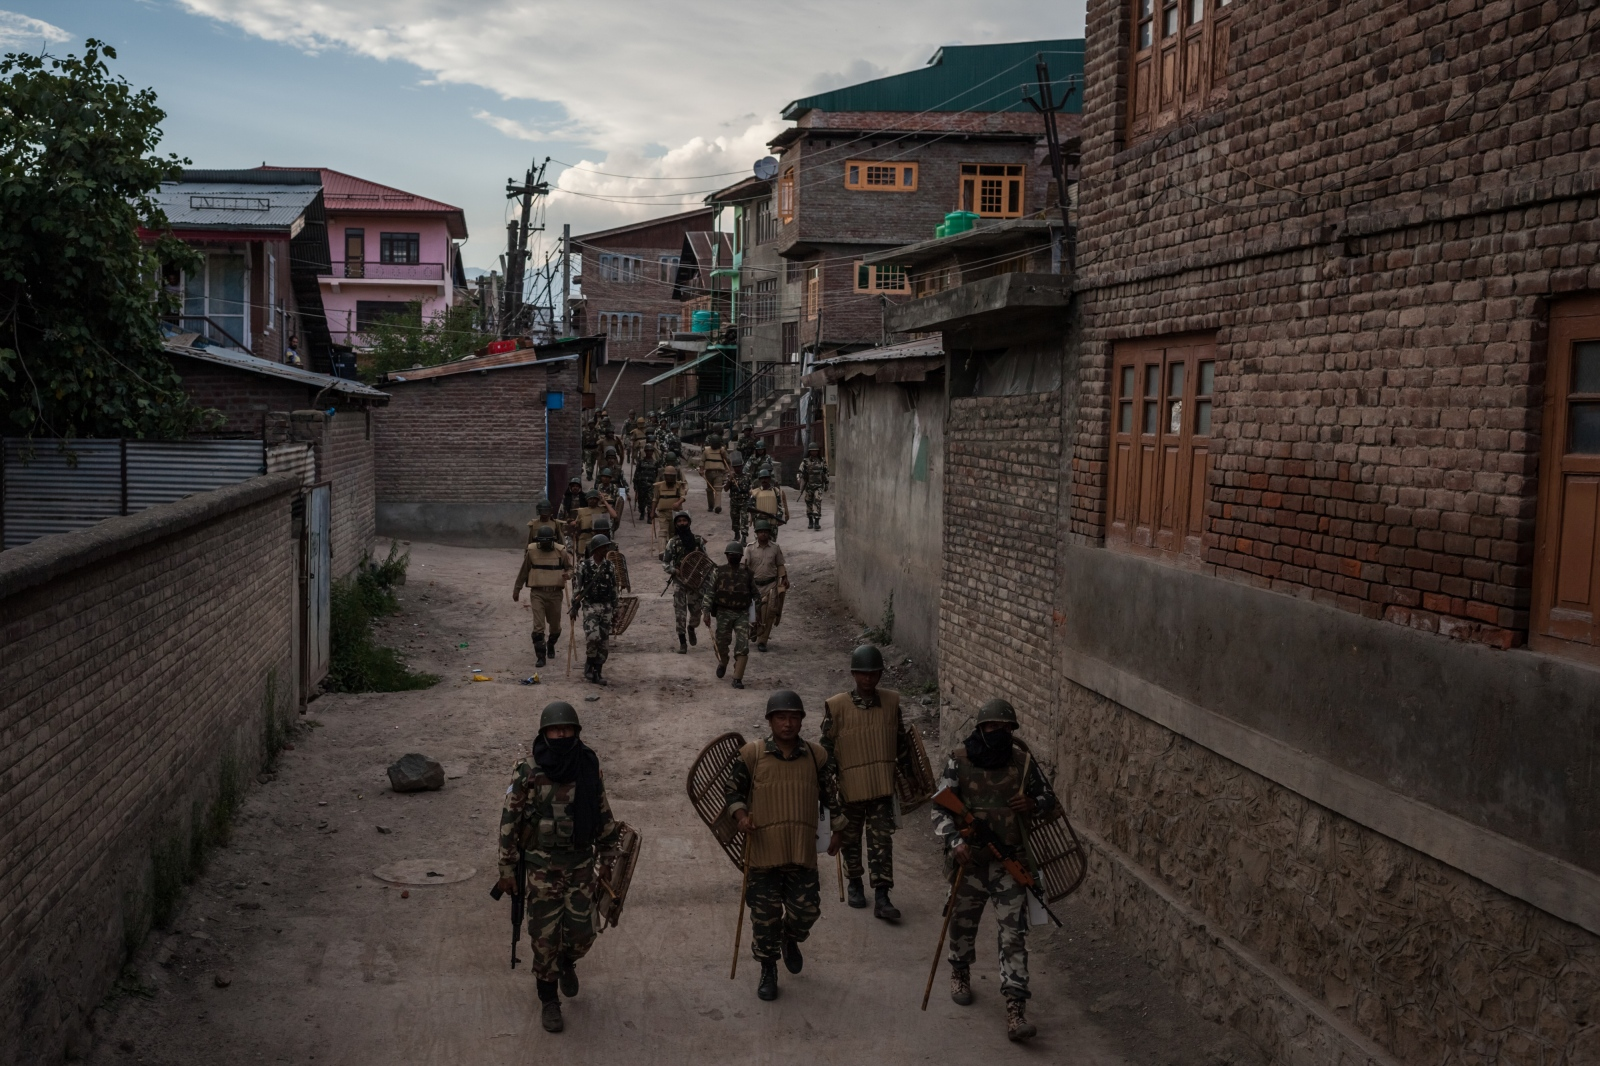 Indian Central Reserve Police Force (CRPF) and security personnel retreat following a day of curfew and shutdown in downtown Srinagar on August 18, 2016.